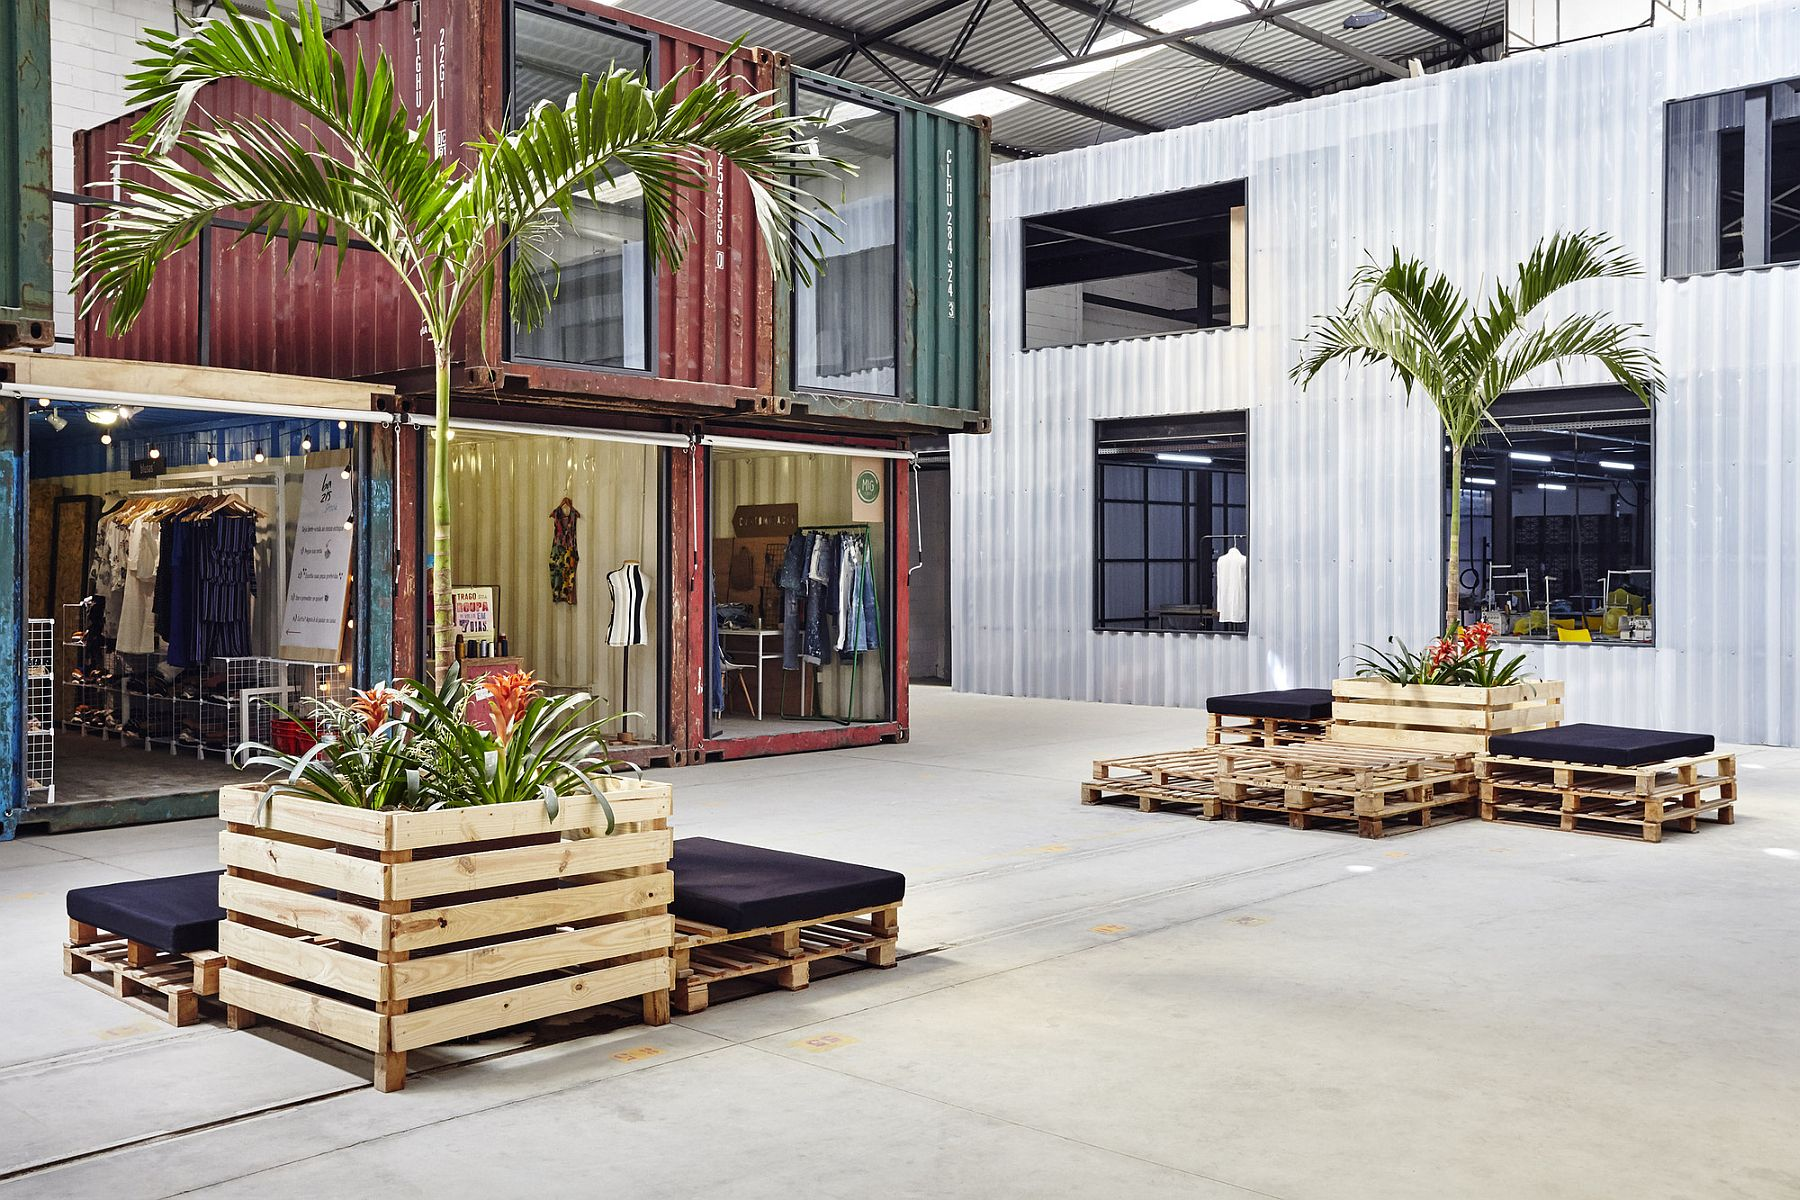 42 Repurposed Containers Inside a Warehouse Reshape Rio s Fashion